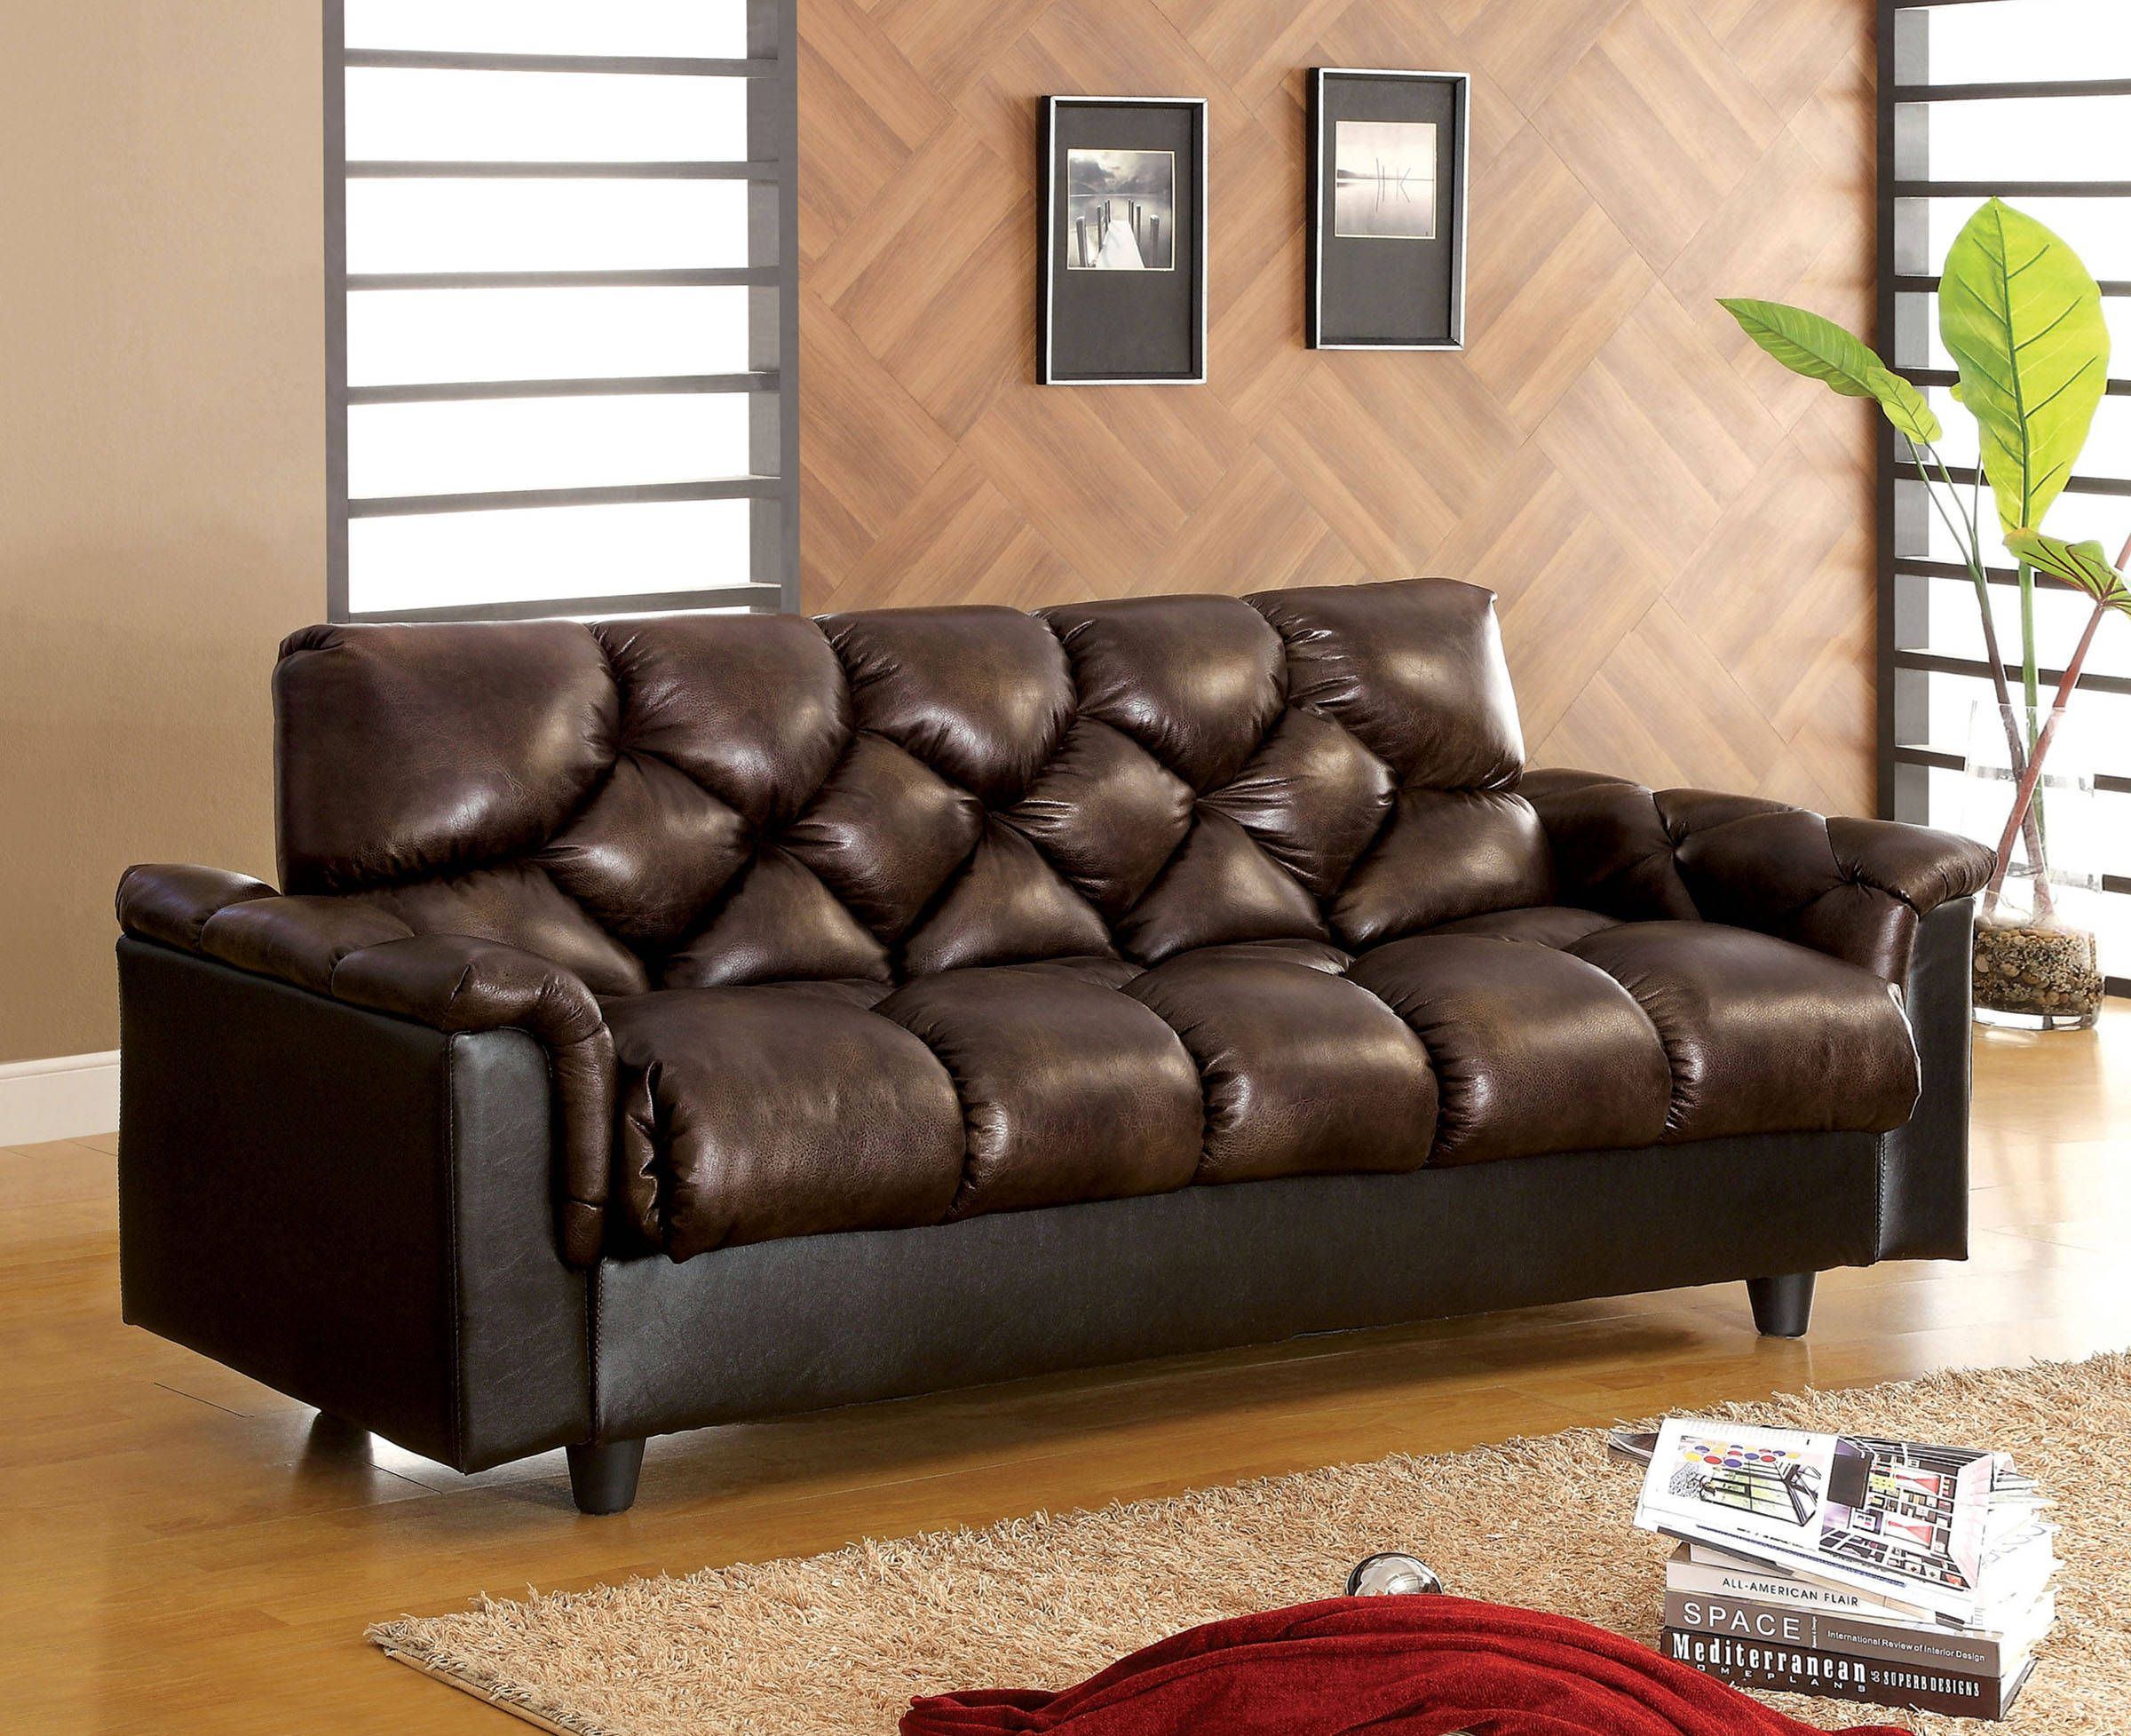 Bowie Contemporary Brown Fabric Leather Like Storage Futon Sofa